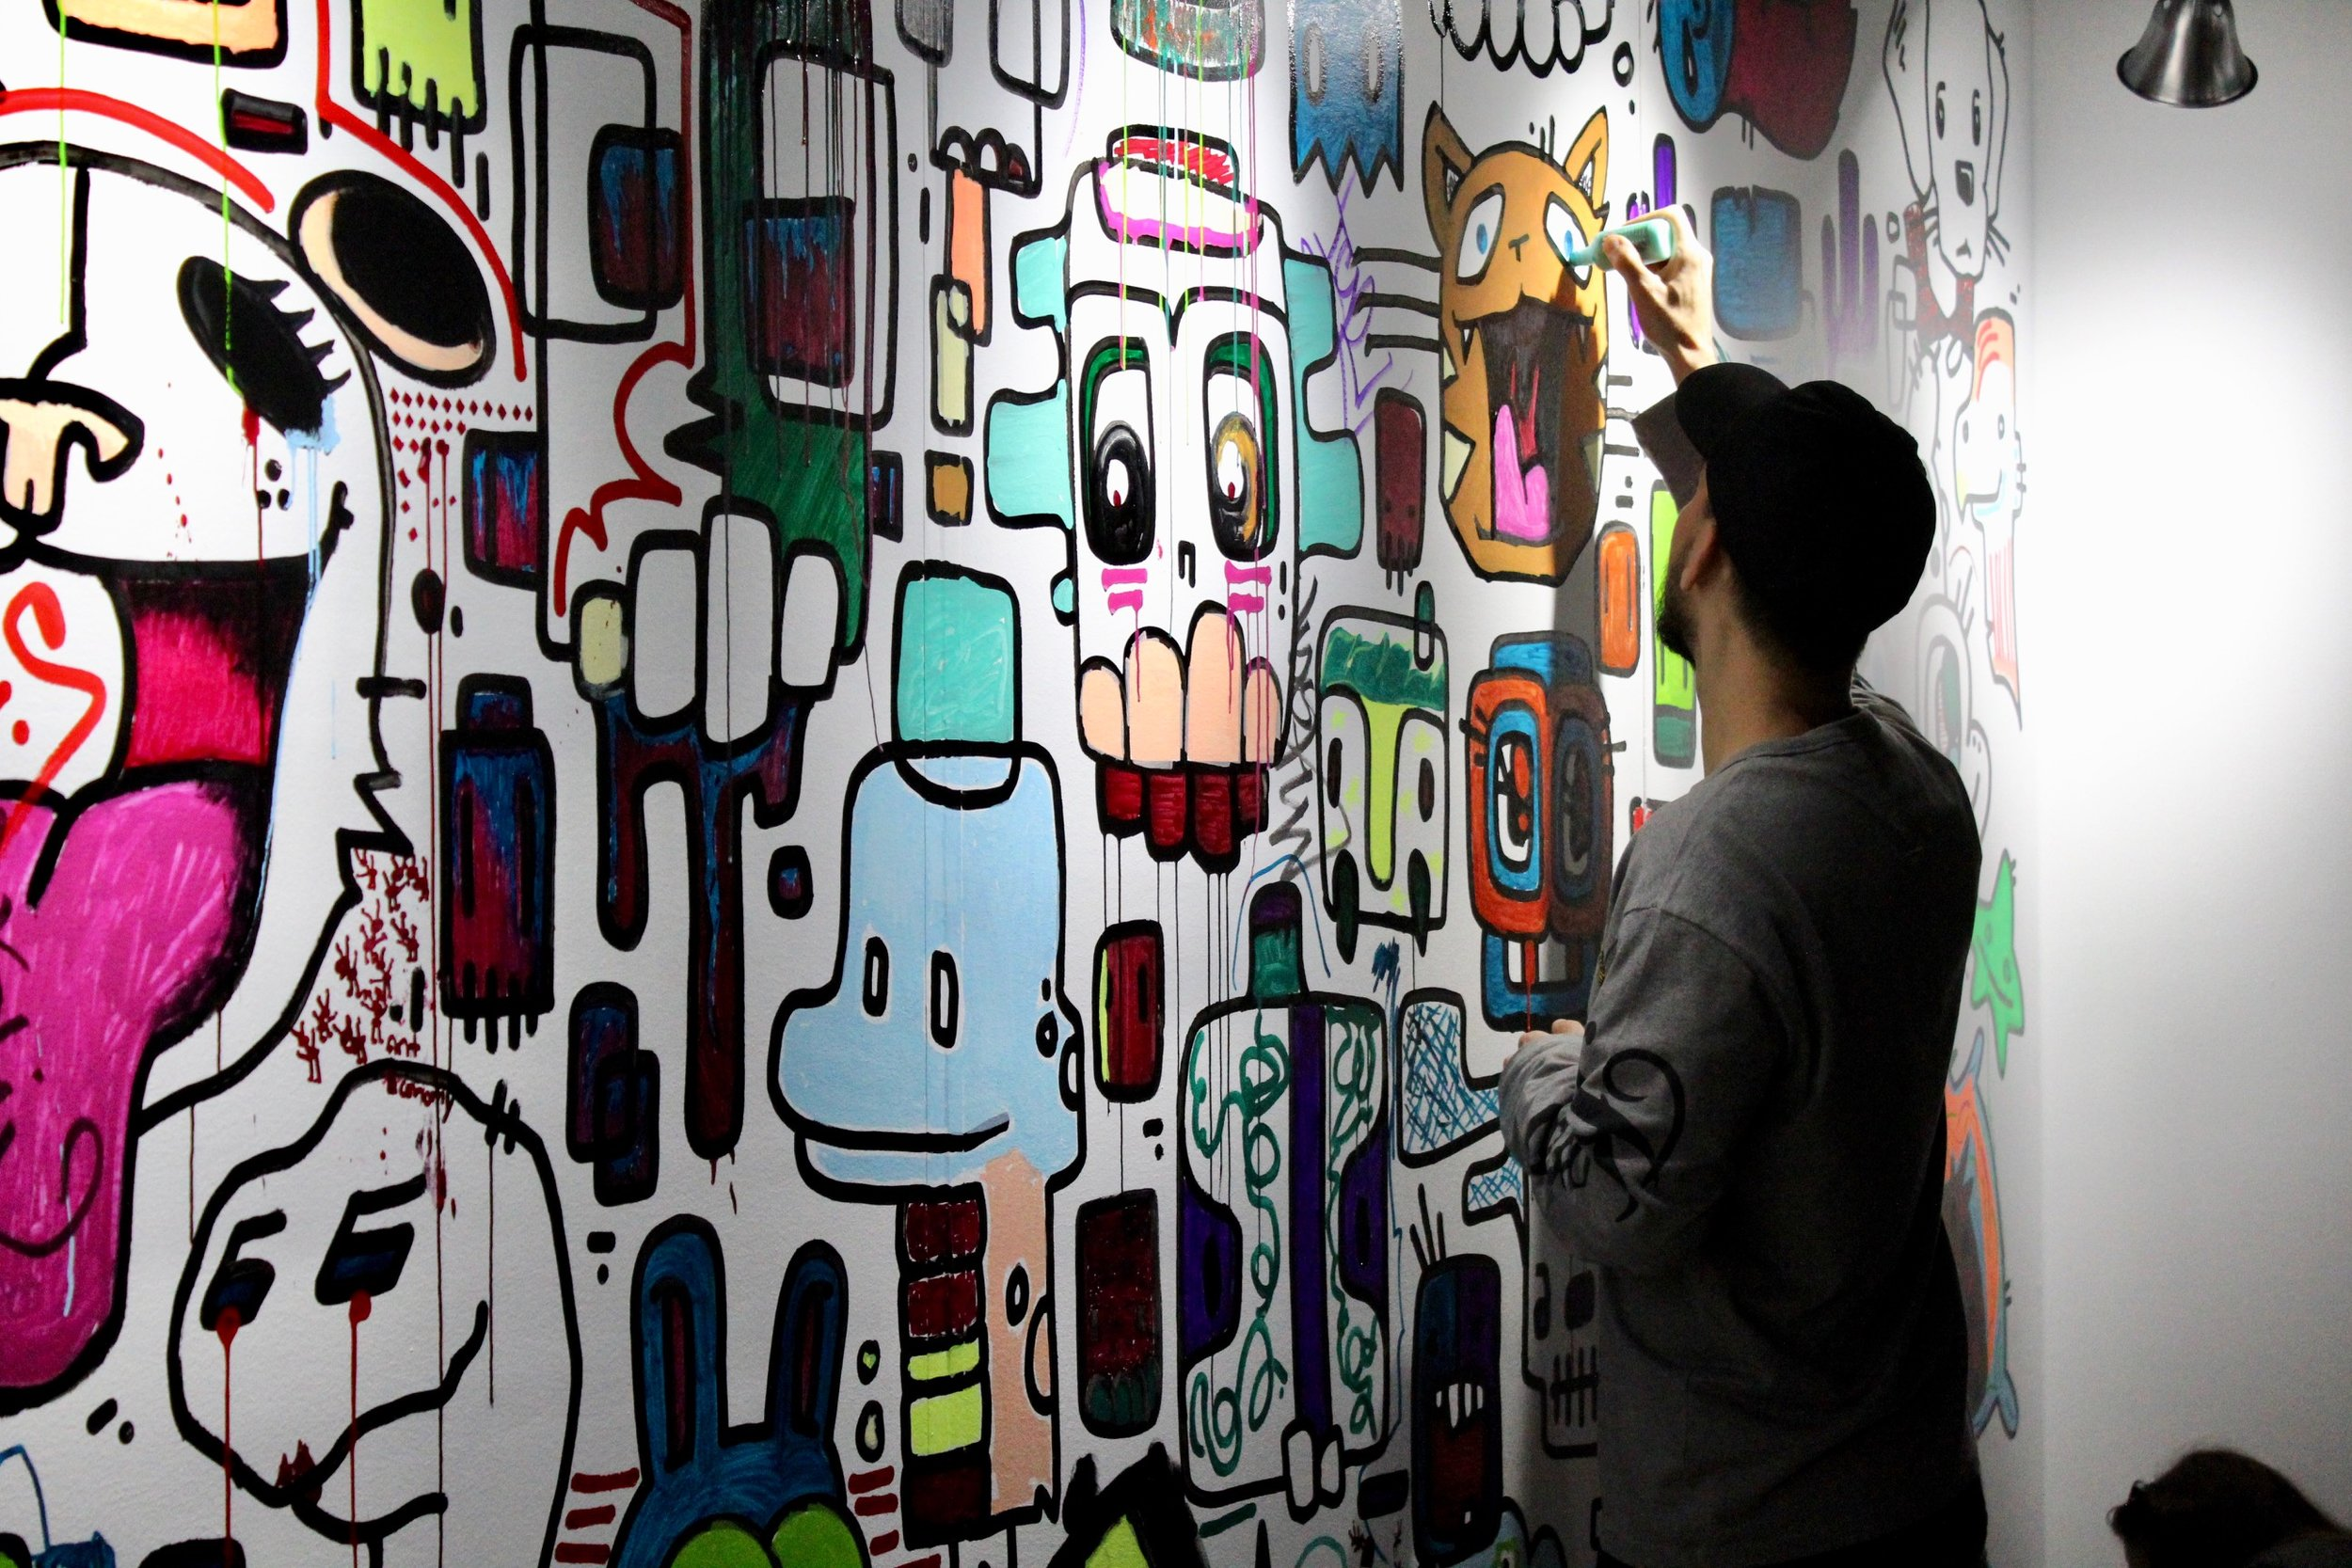 Artist Mike Shinoda of Linkin Park adding to the wall